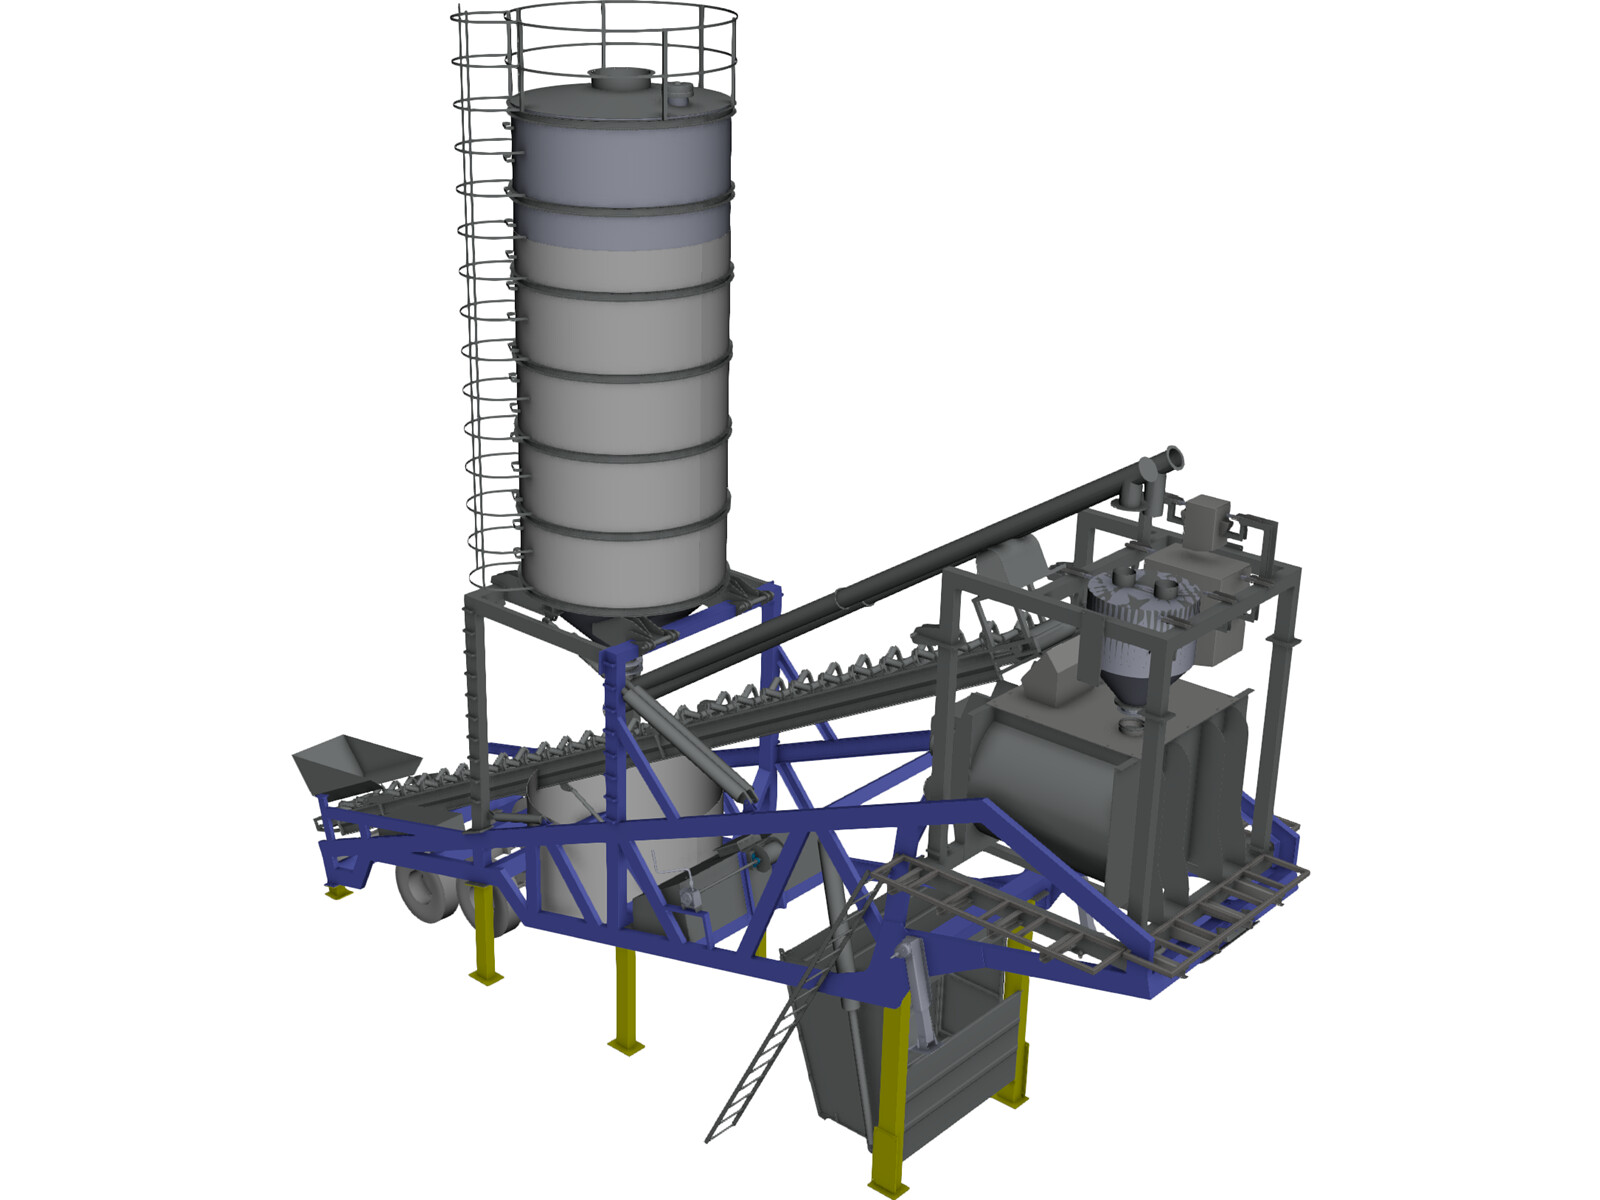 Mobile concrete batching plant mixer 3d cad model 3d cad for Mobel cad programm